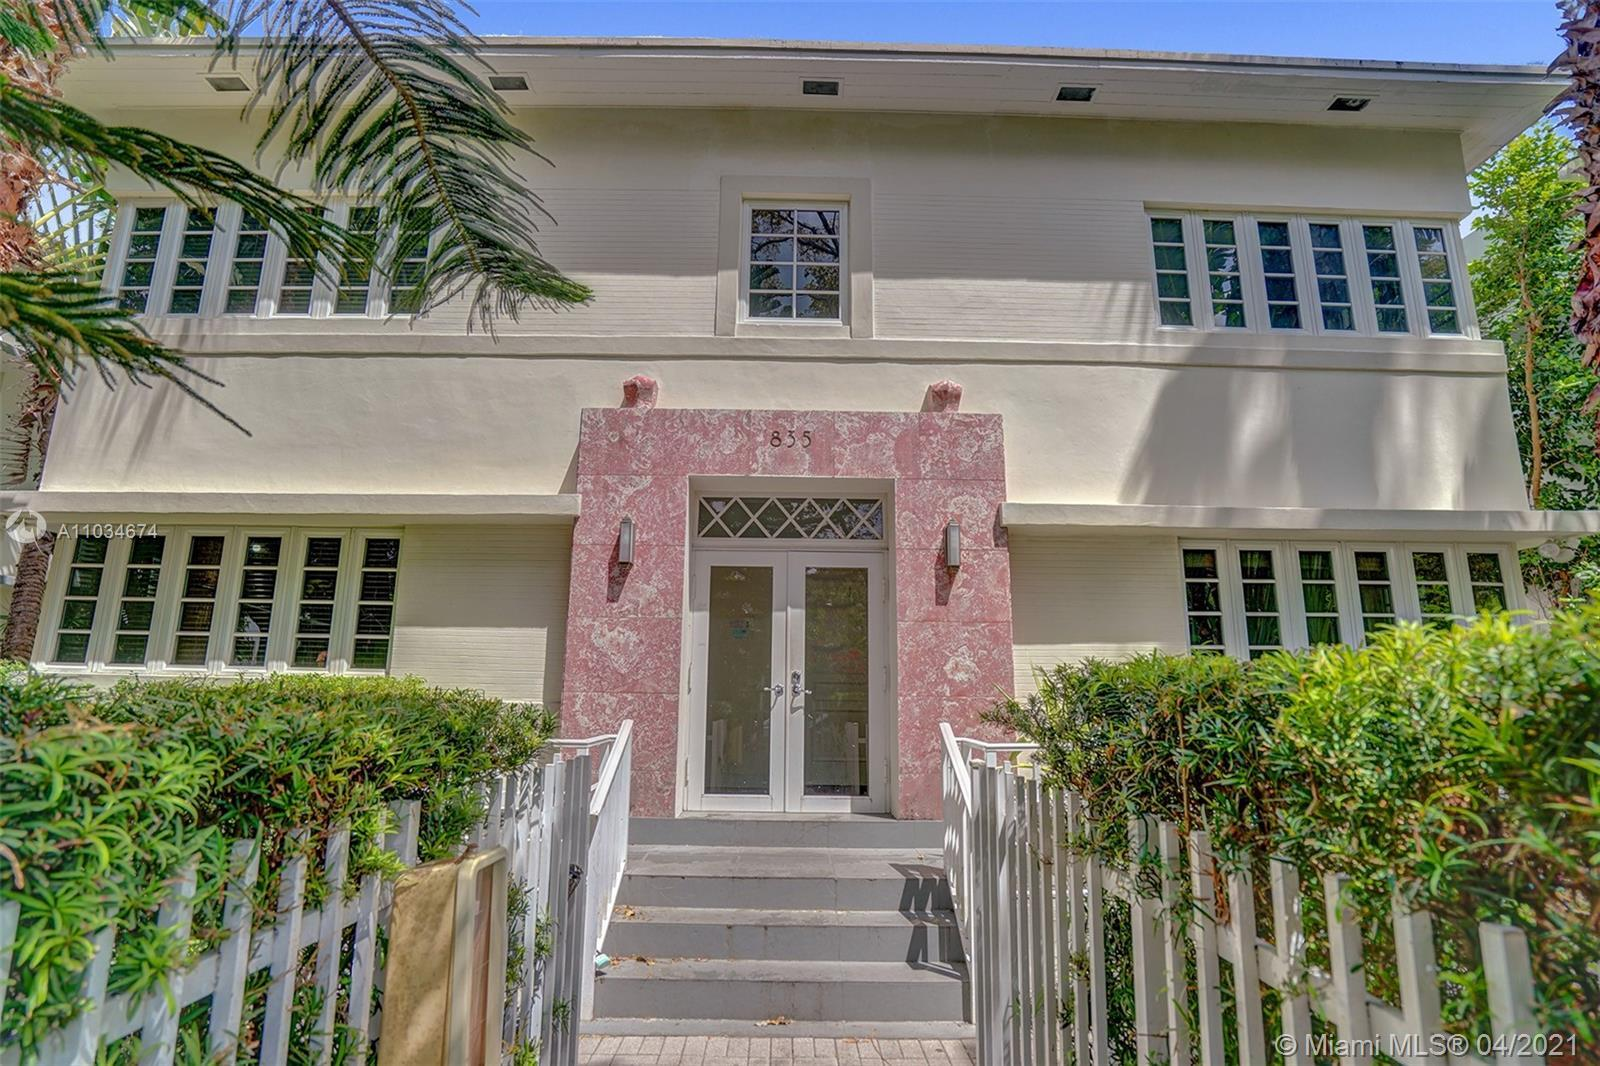 GREAT POTENTIAL FOR CONVERSION INTO 7 INDIVIDUAL TOWNHOUSES FOR BIG $$$ Historic Art Deco Building